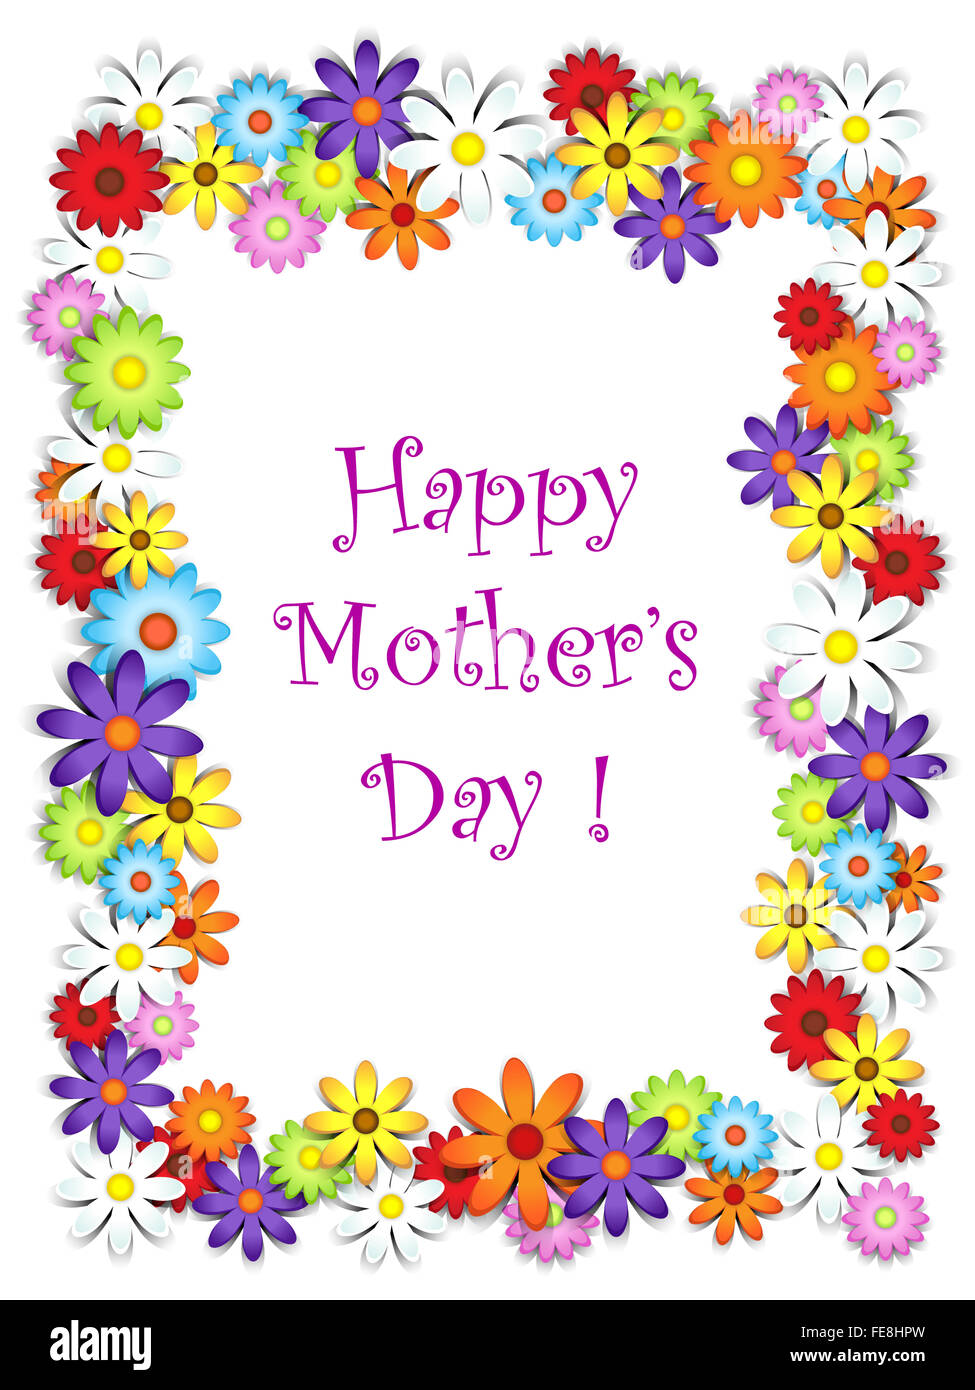 Flower frame happy mother\'s day card Stock Photo: 94846609 - Alamy